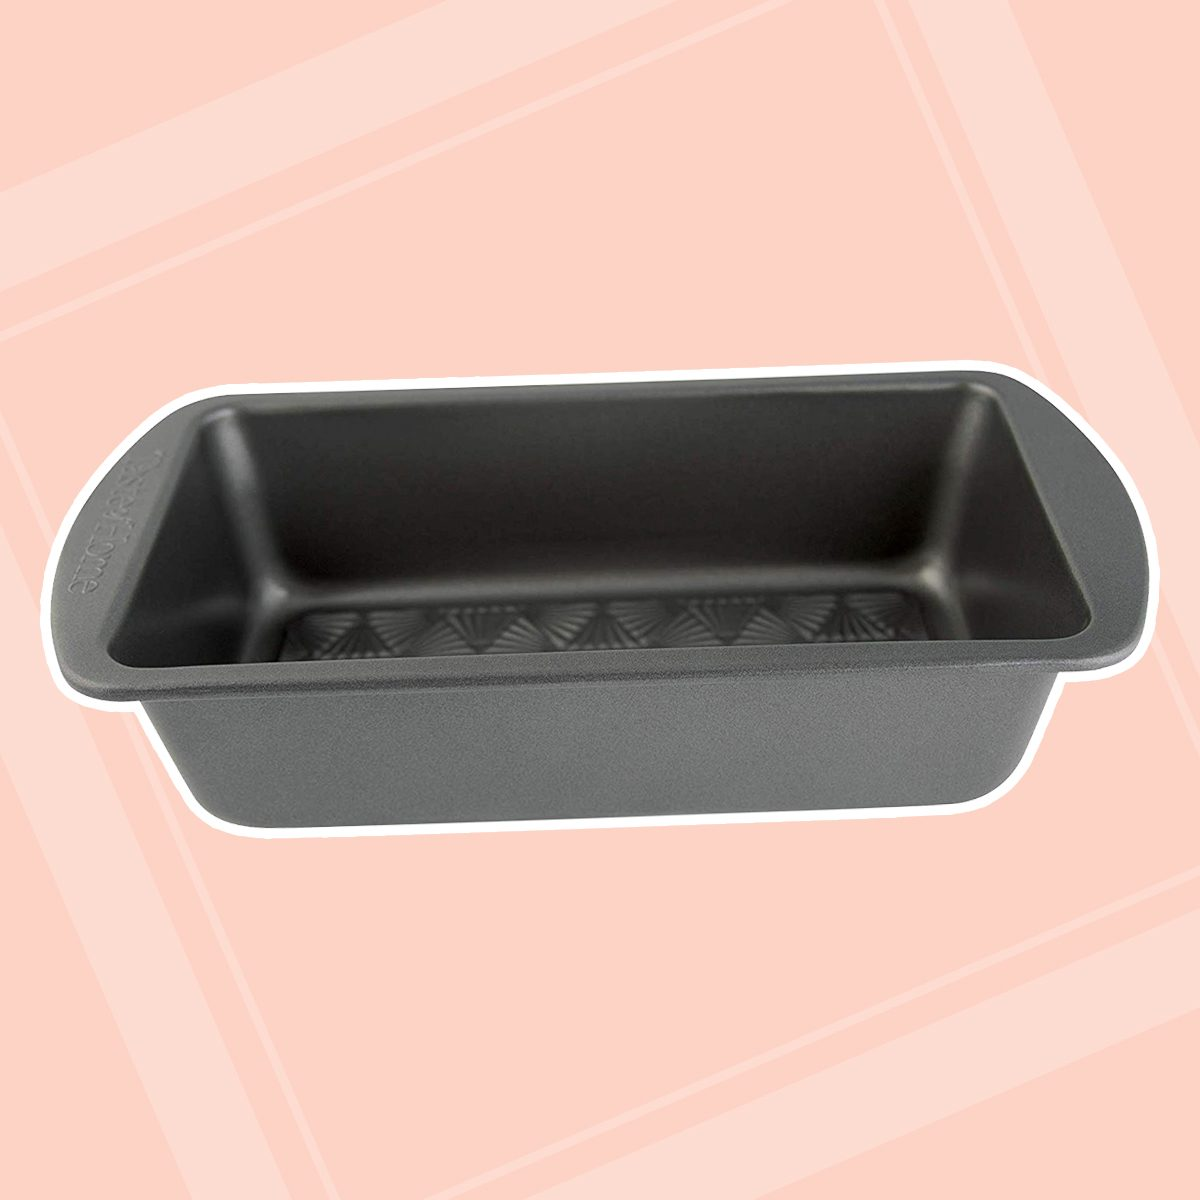 Taste of Home 9 x 5 inch Non-Stick Metal Loaf Pan